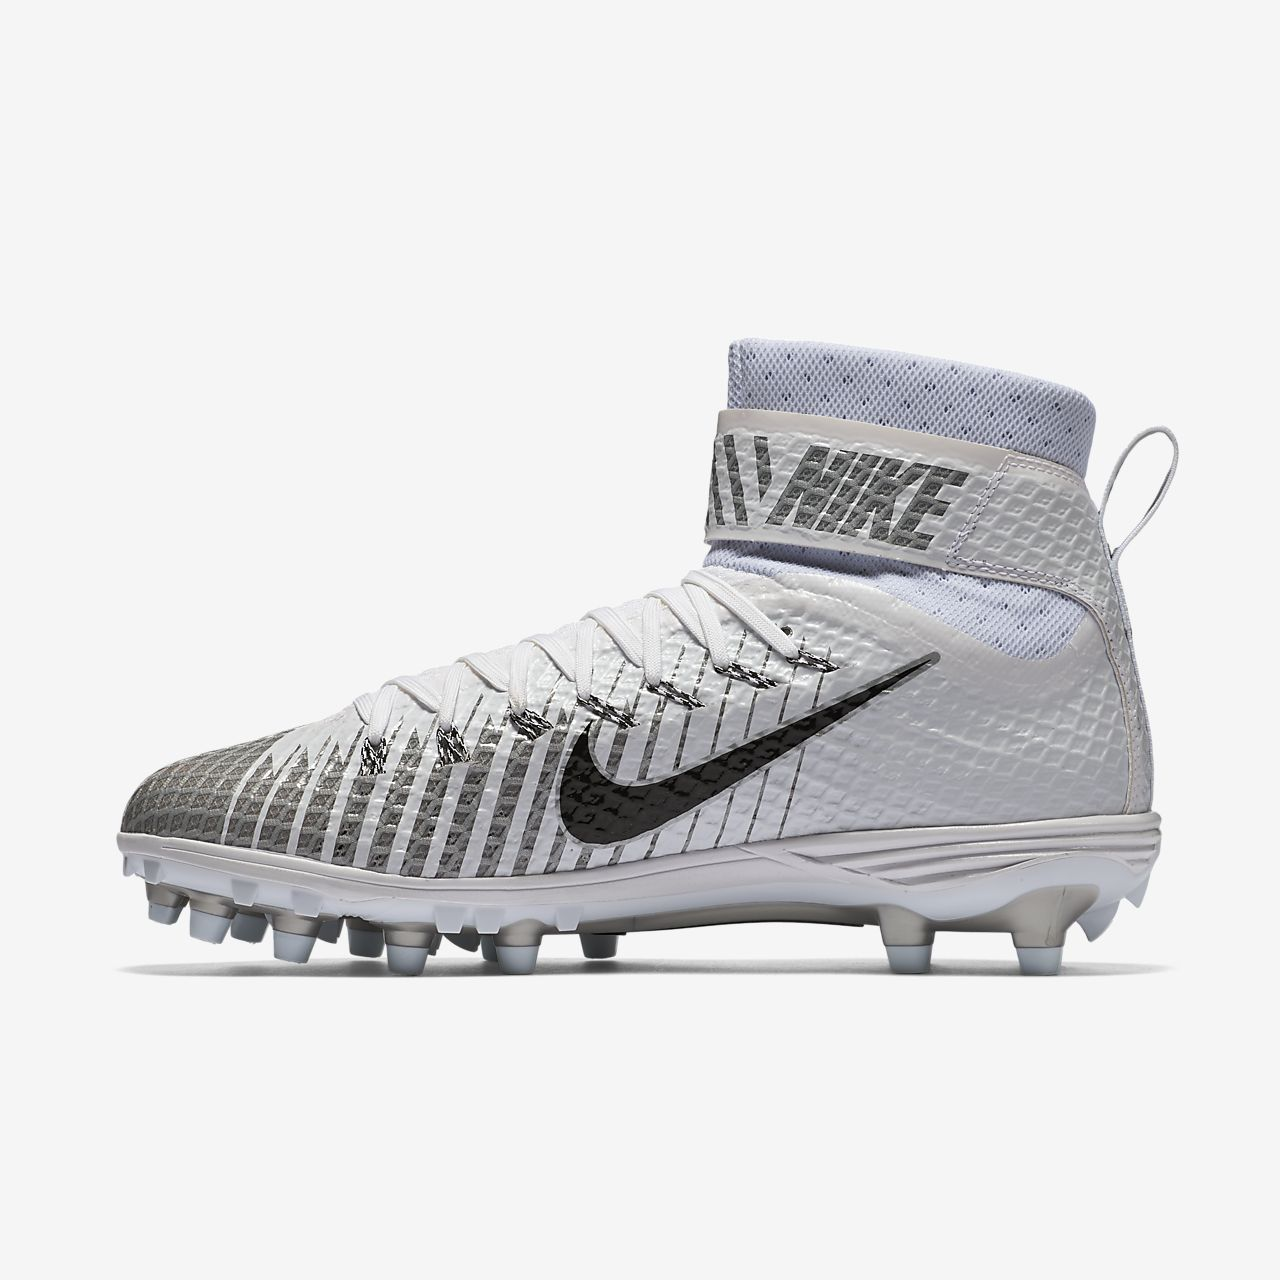 Nike Force Lunarbeast Elite TD Football Cleats White Silver  779422-100 Size 10